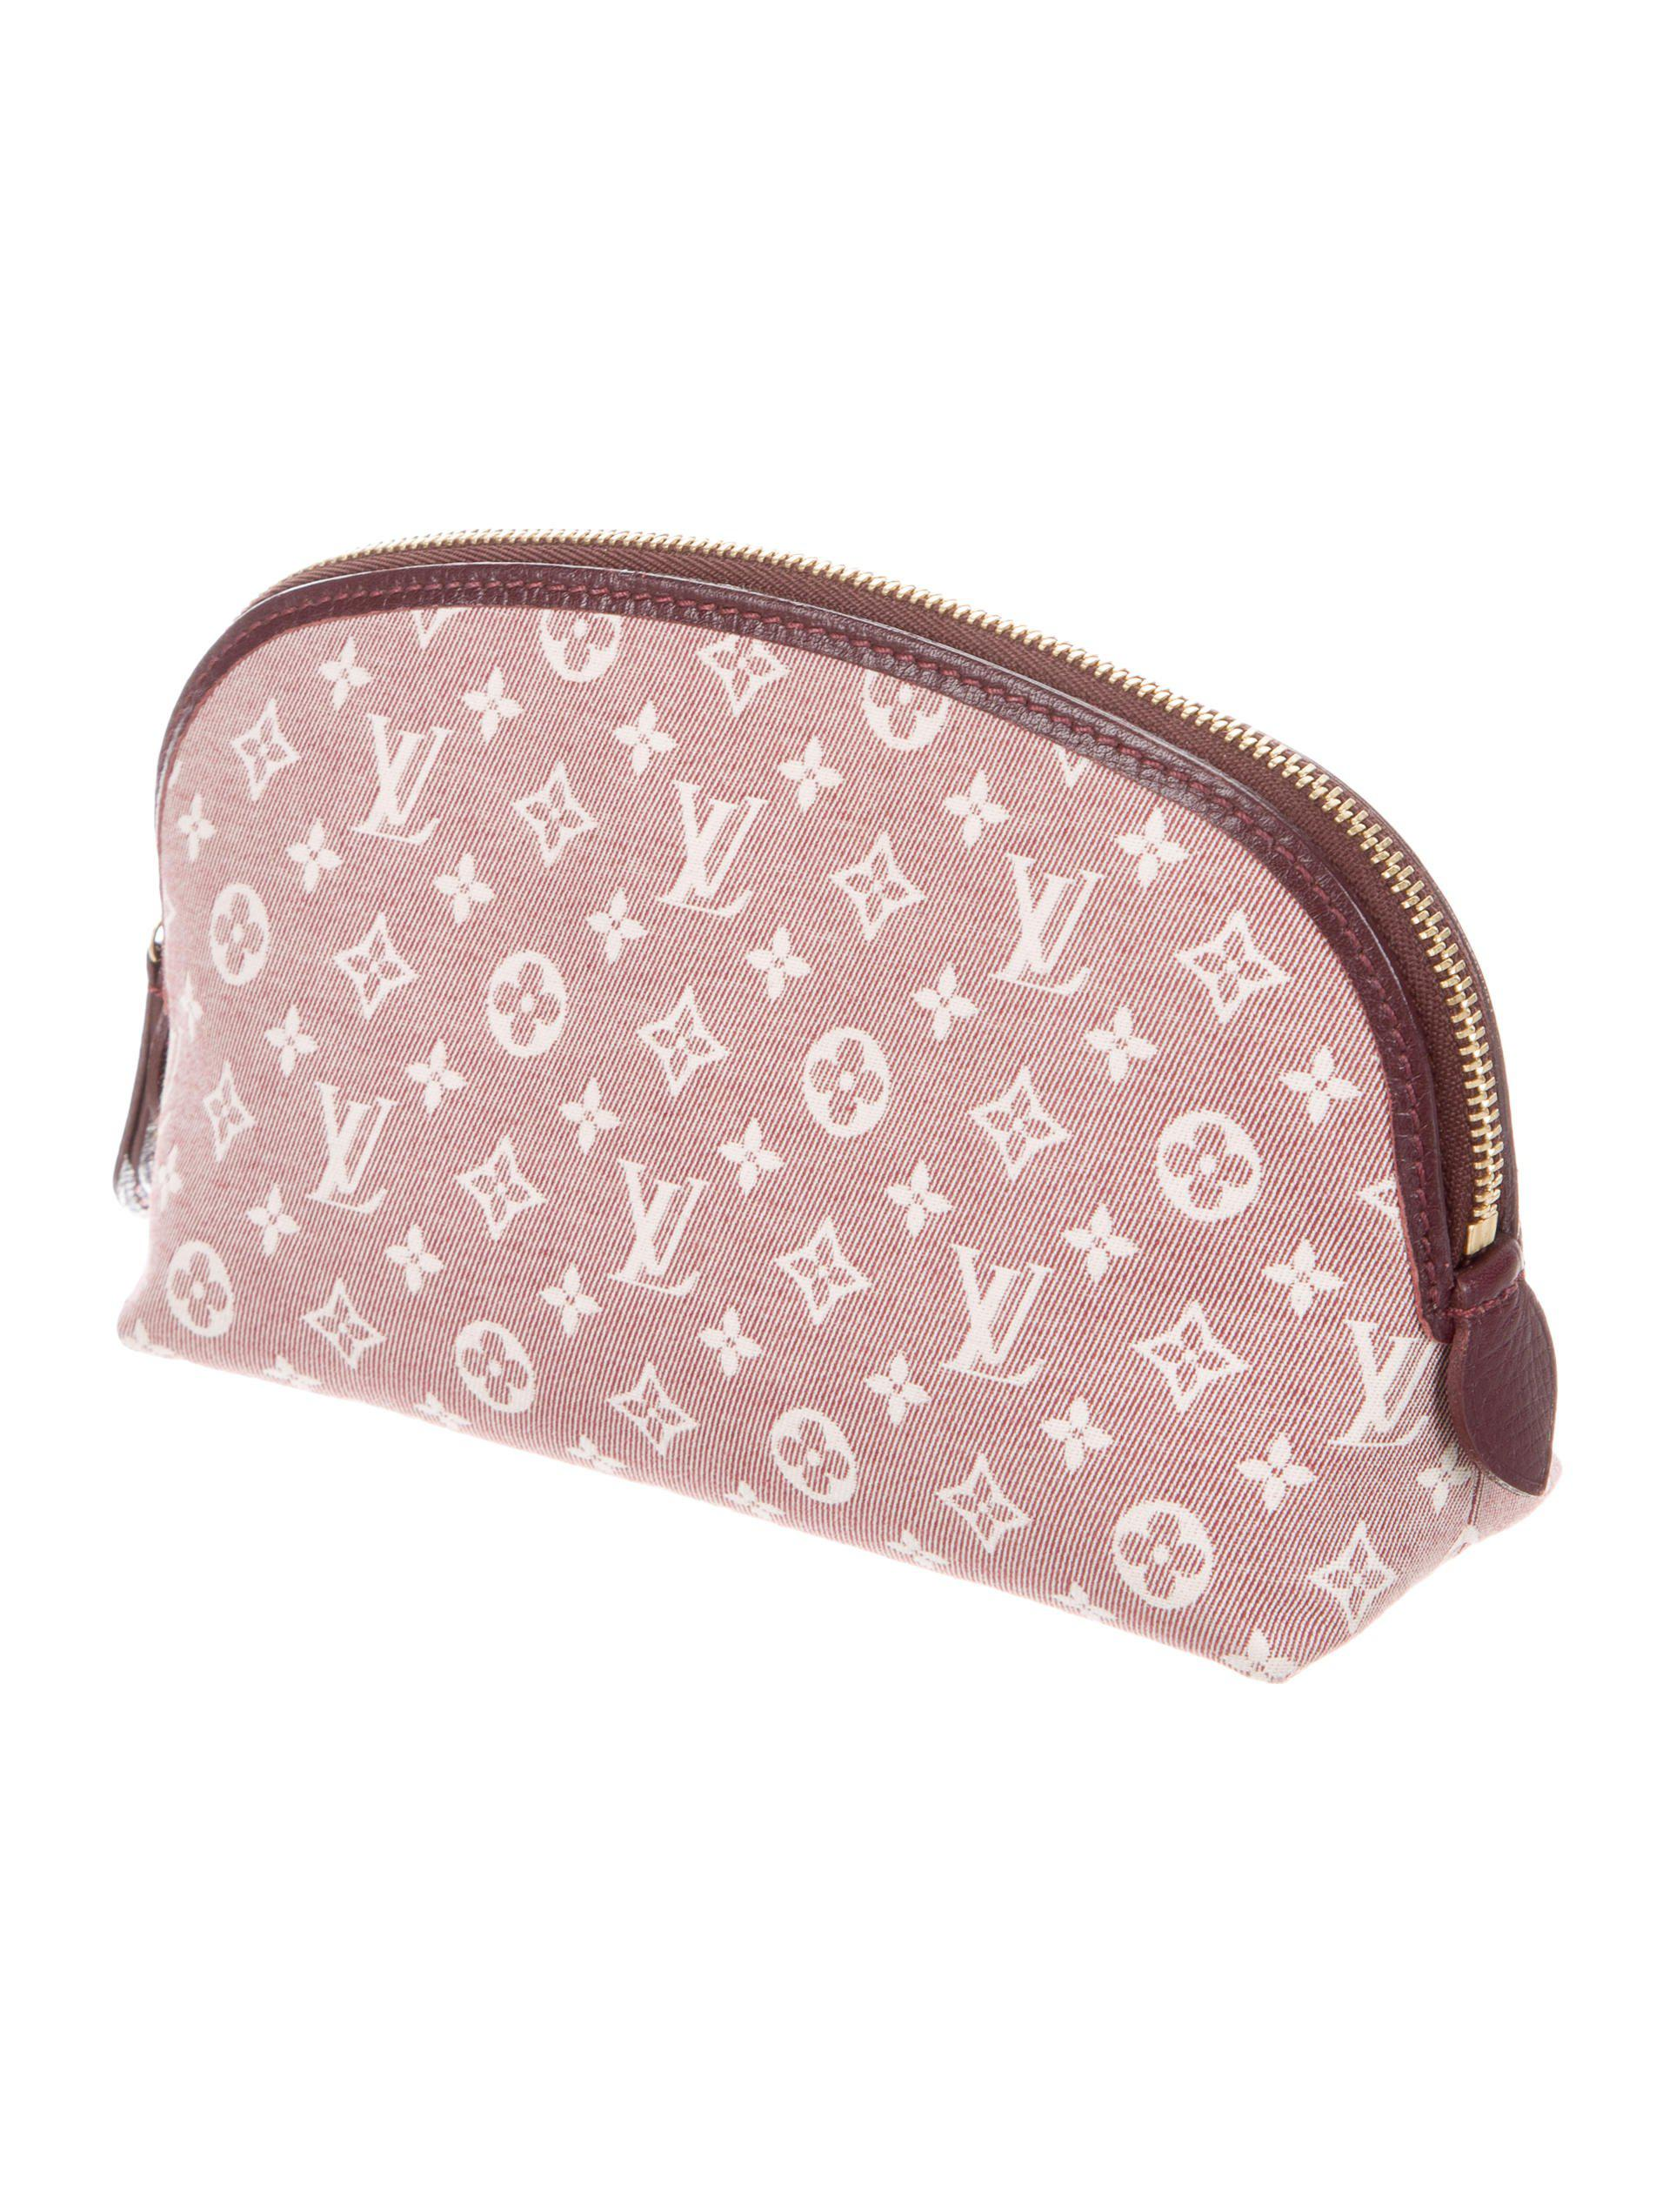 3f157695267 Lyst - Louis Vuitton Monogram Idylle Cosmetic Pouch Gold in Metallic